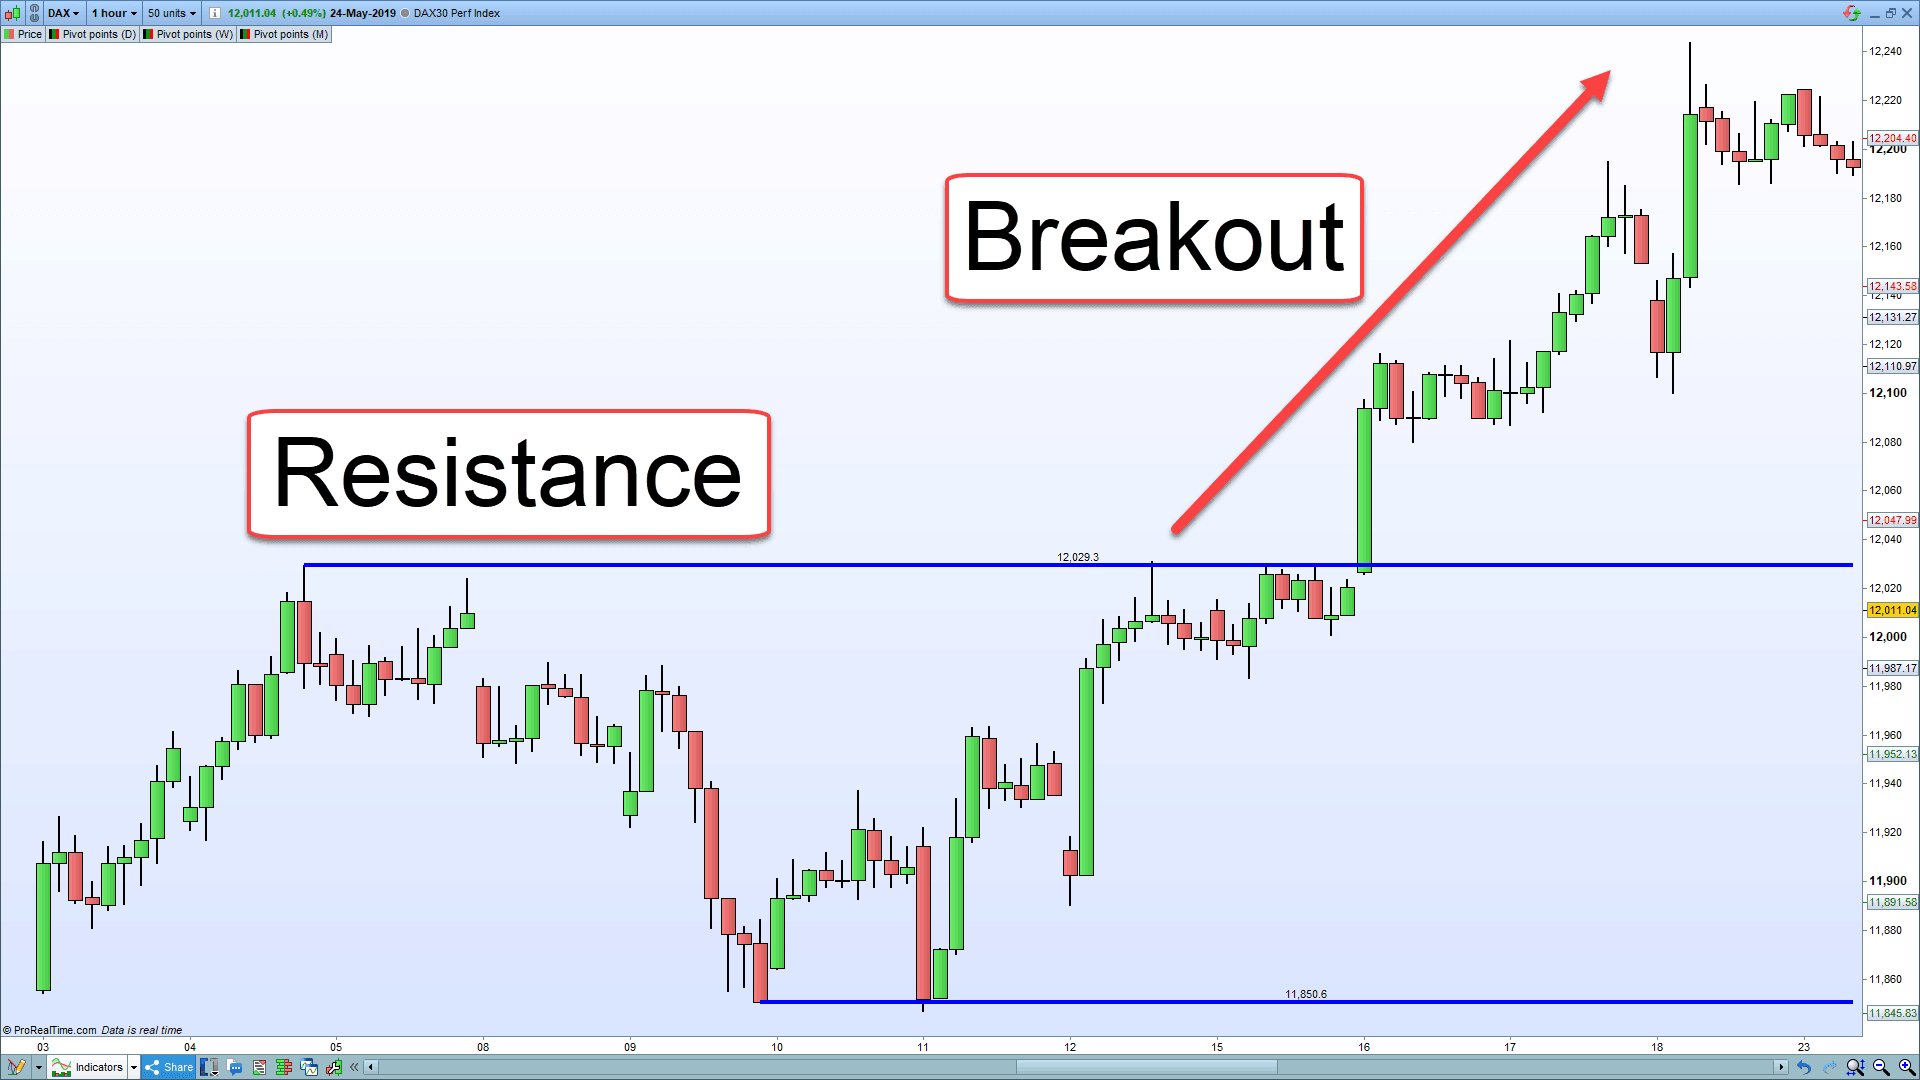 Picture of a completed breakout trade